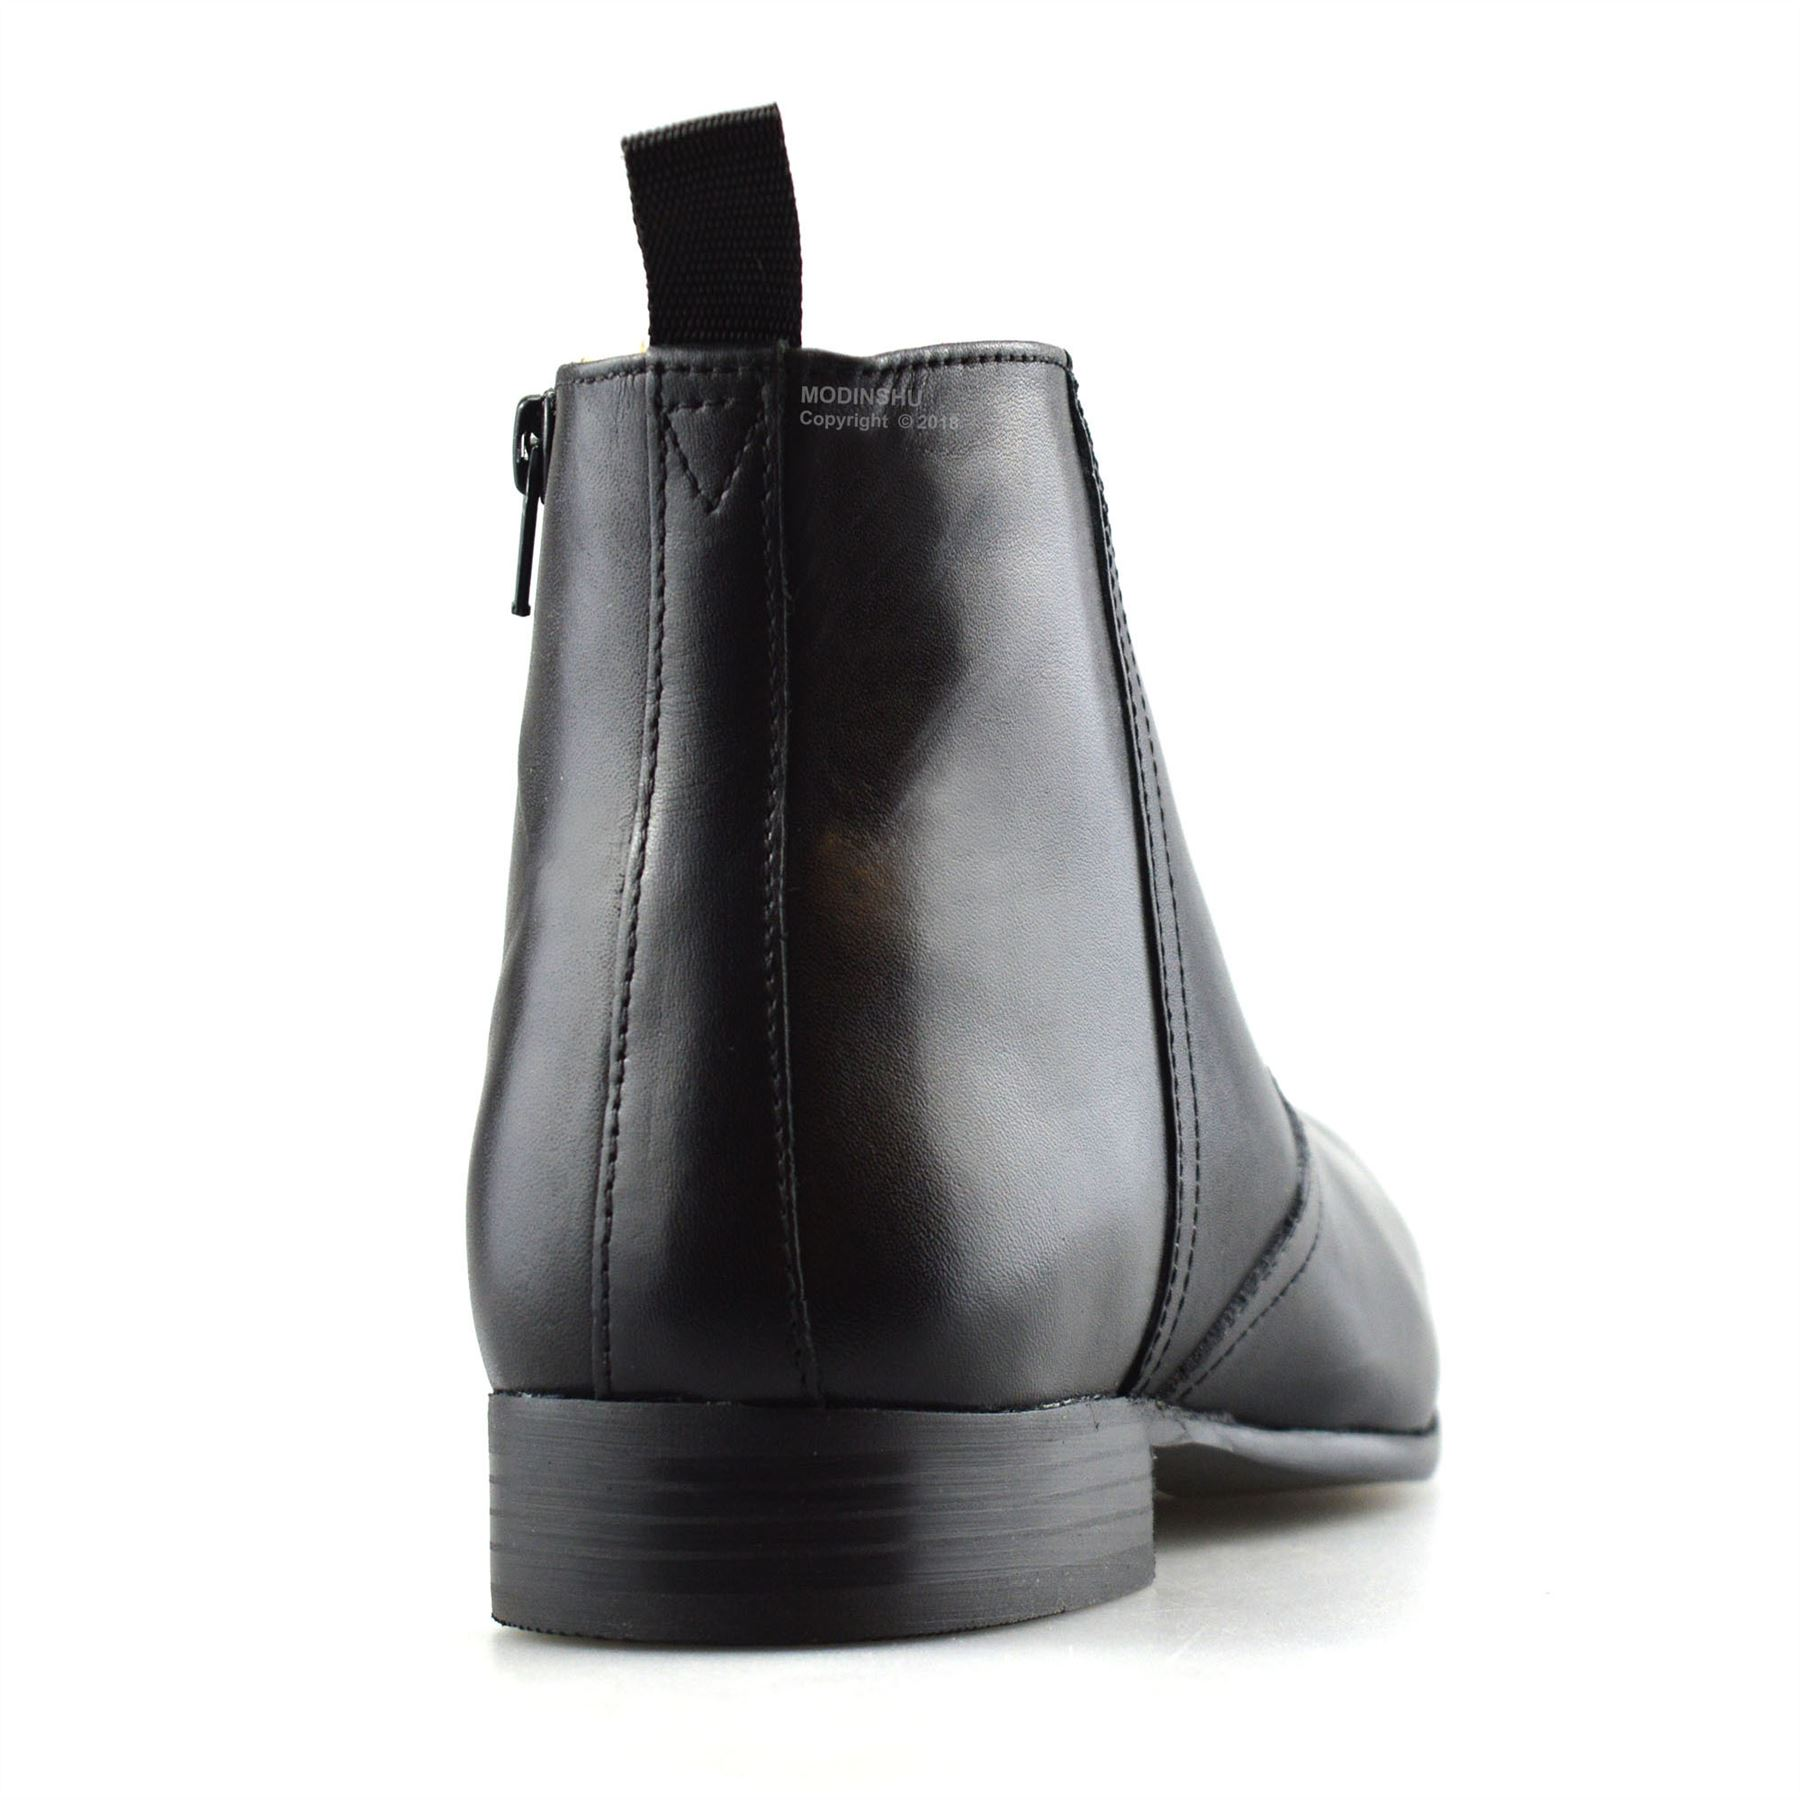 Mens-New-Leather-Zip-Up-Smart-Formal-Chelsea-Dealer-Work-Ankle-Boots-Shoes-Size thumbnail 12